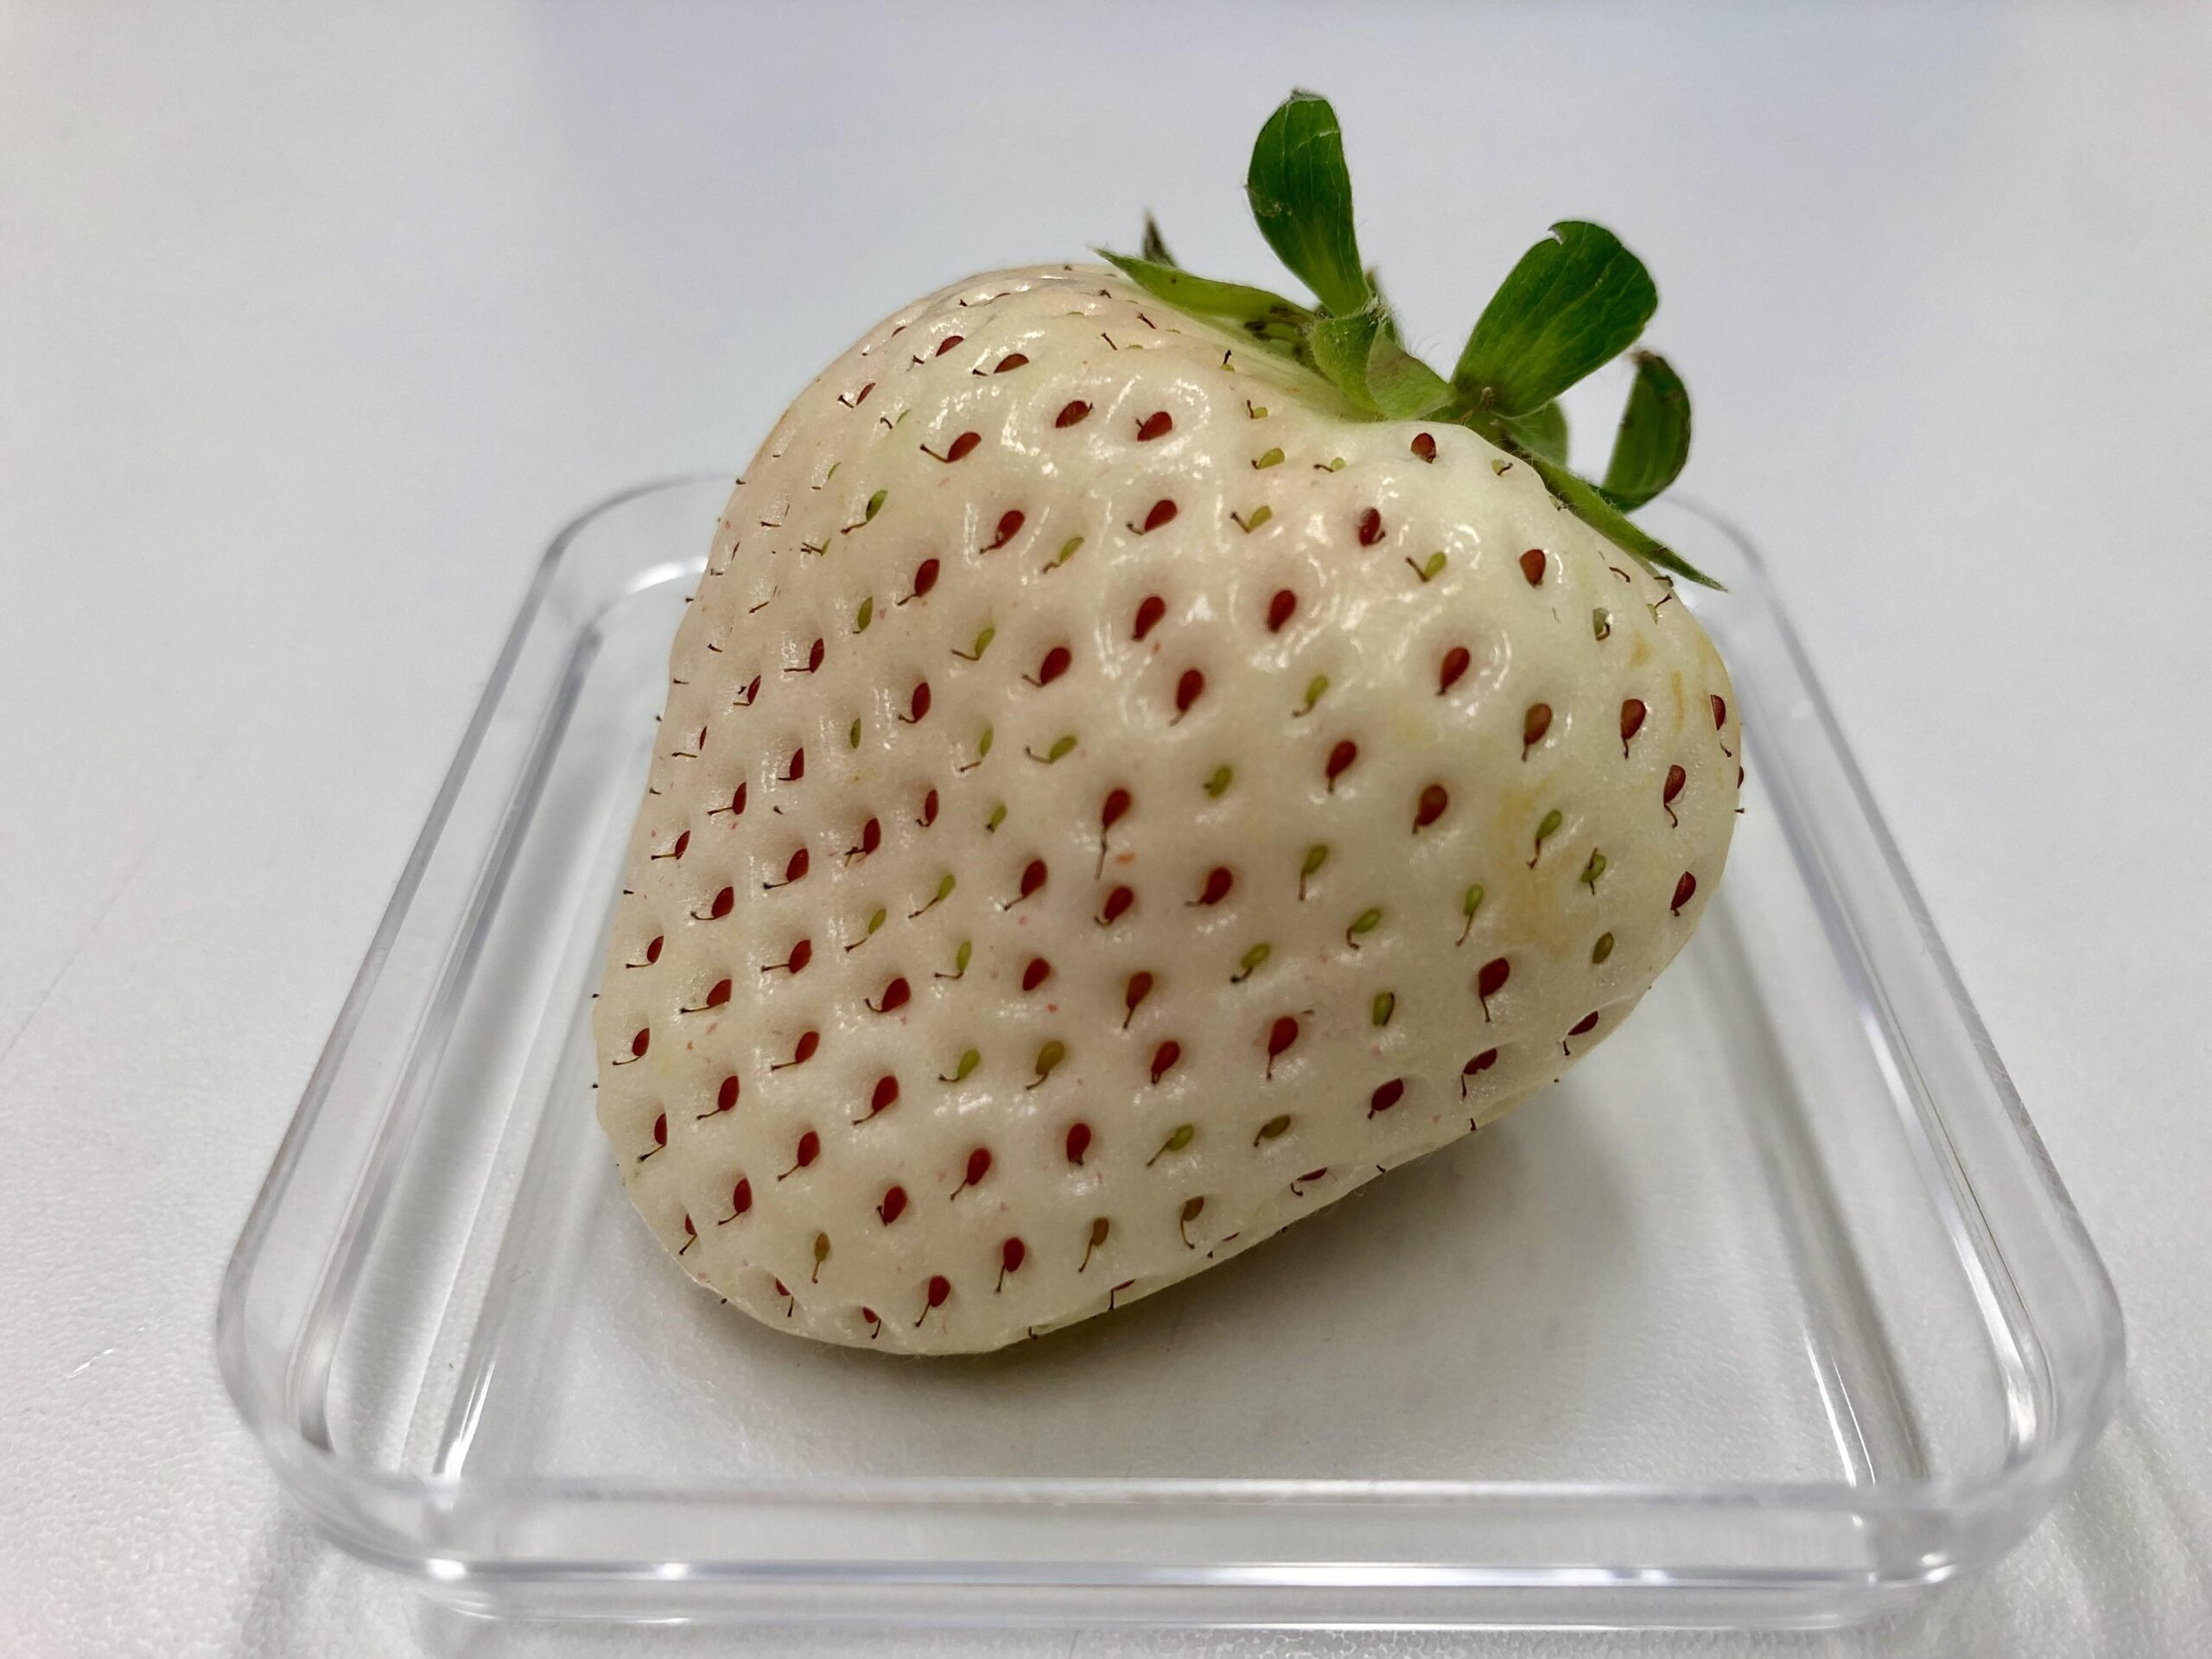 Strawberries: a white strawberry sits in a dish